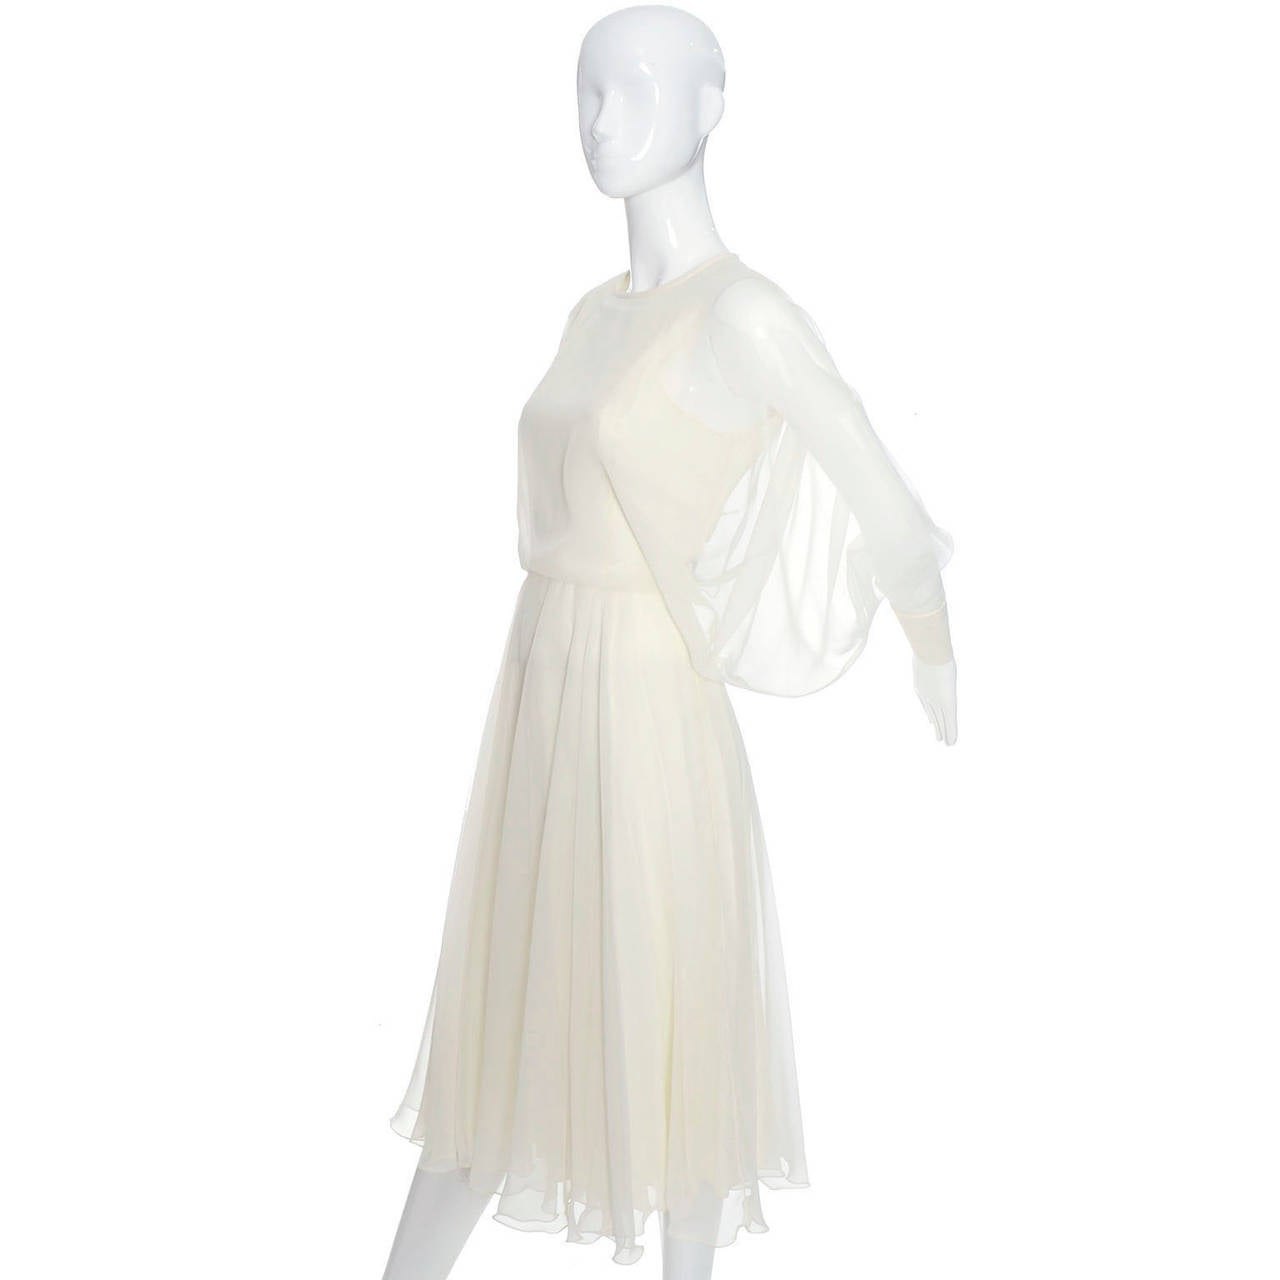 1970s Vintage Jean Varon John Bates Chiffon Designer Dress Batwing Sleeves In Excellent Condition For Sale In Portland, OR